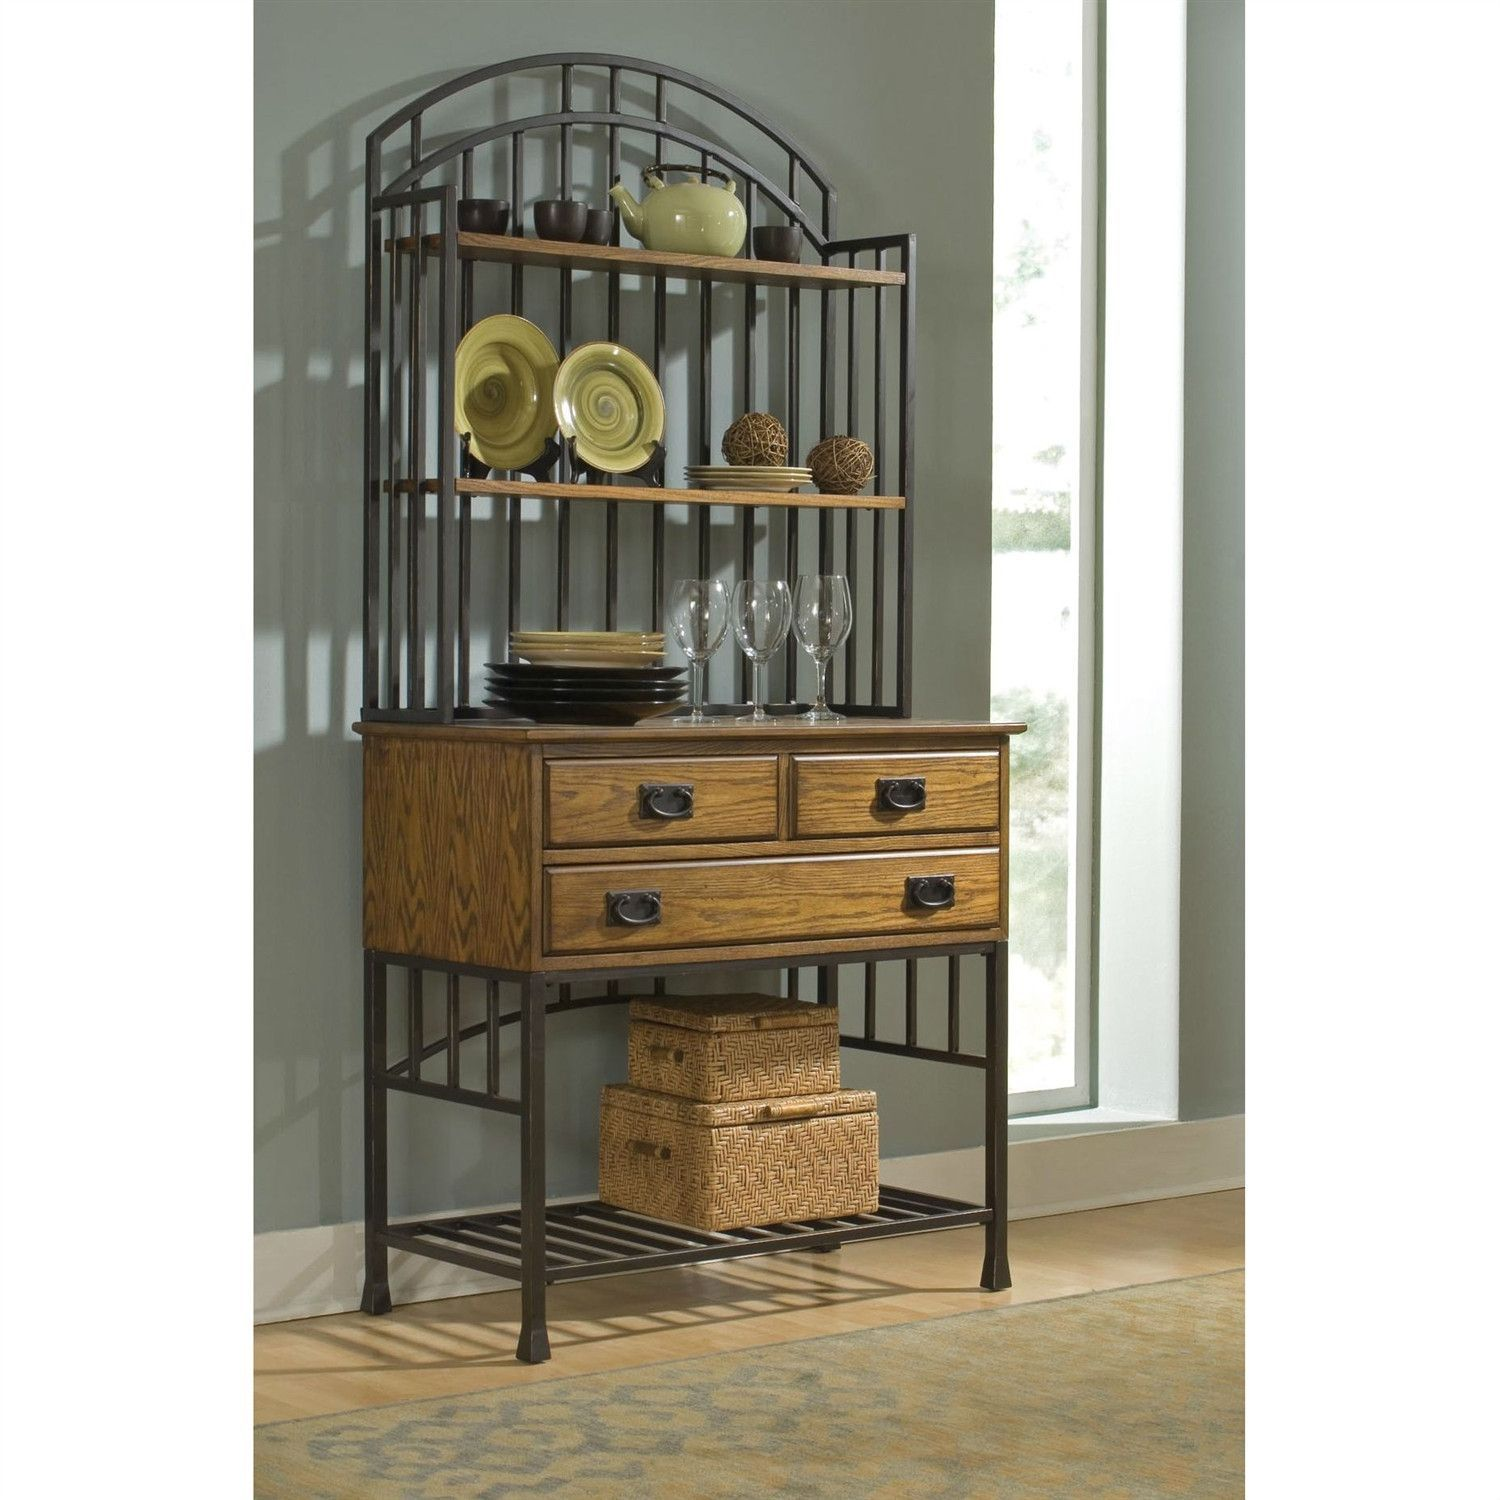 Contemporary Style Metal Bakers Rack with Two Wood Utility Drawers